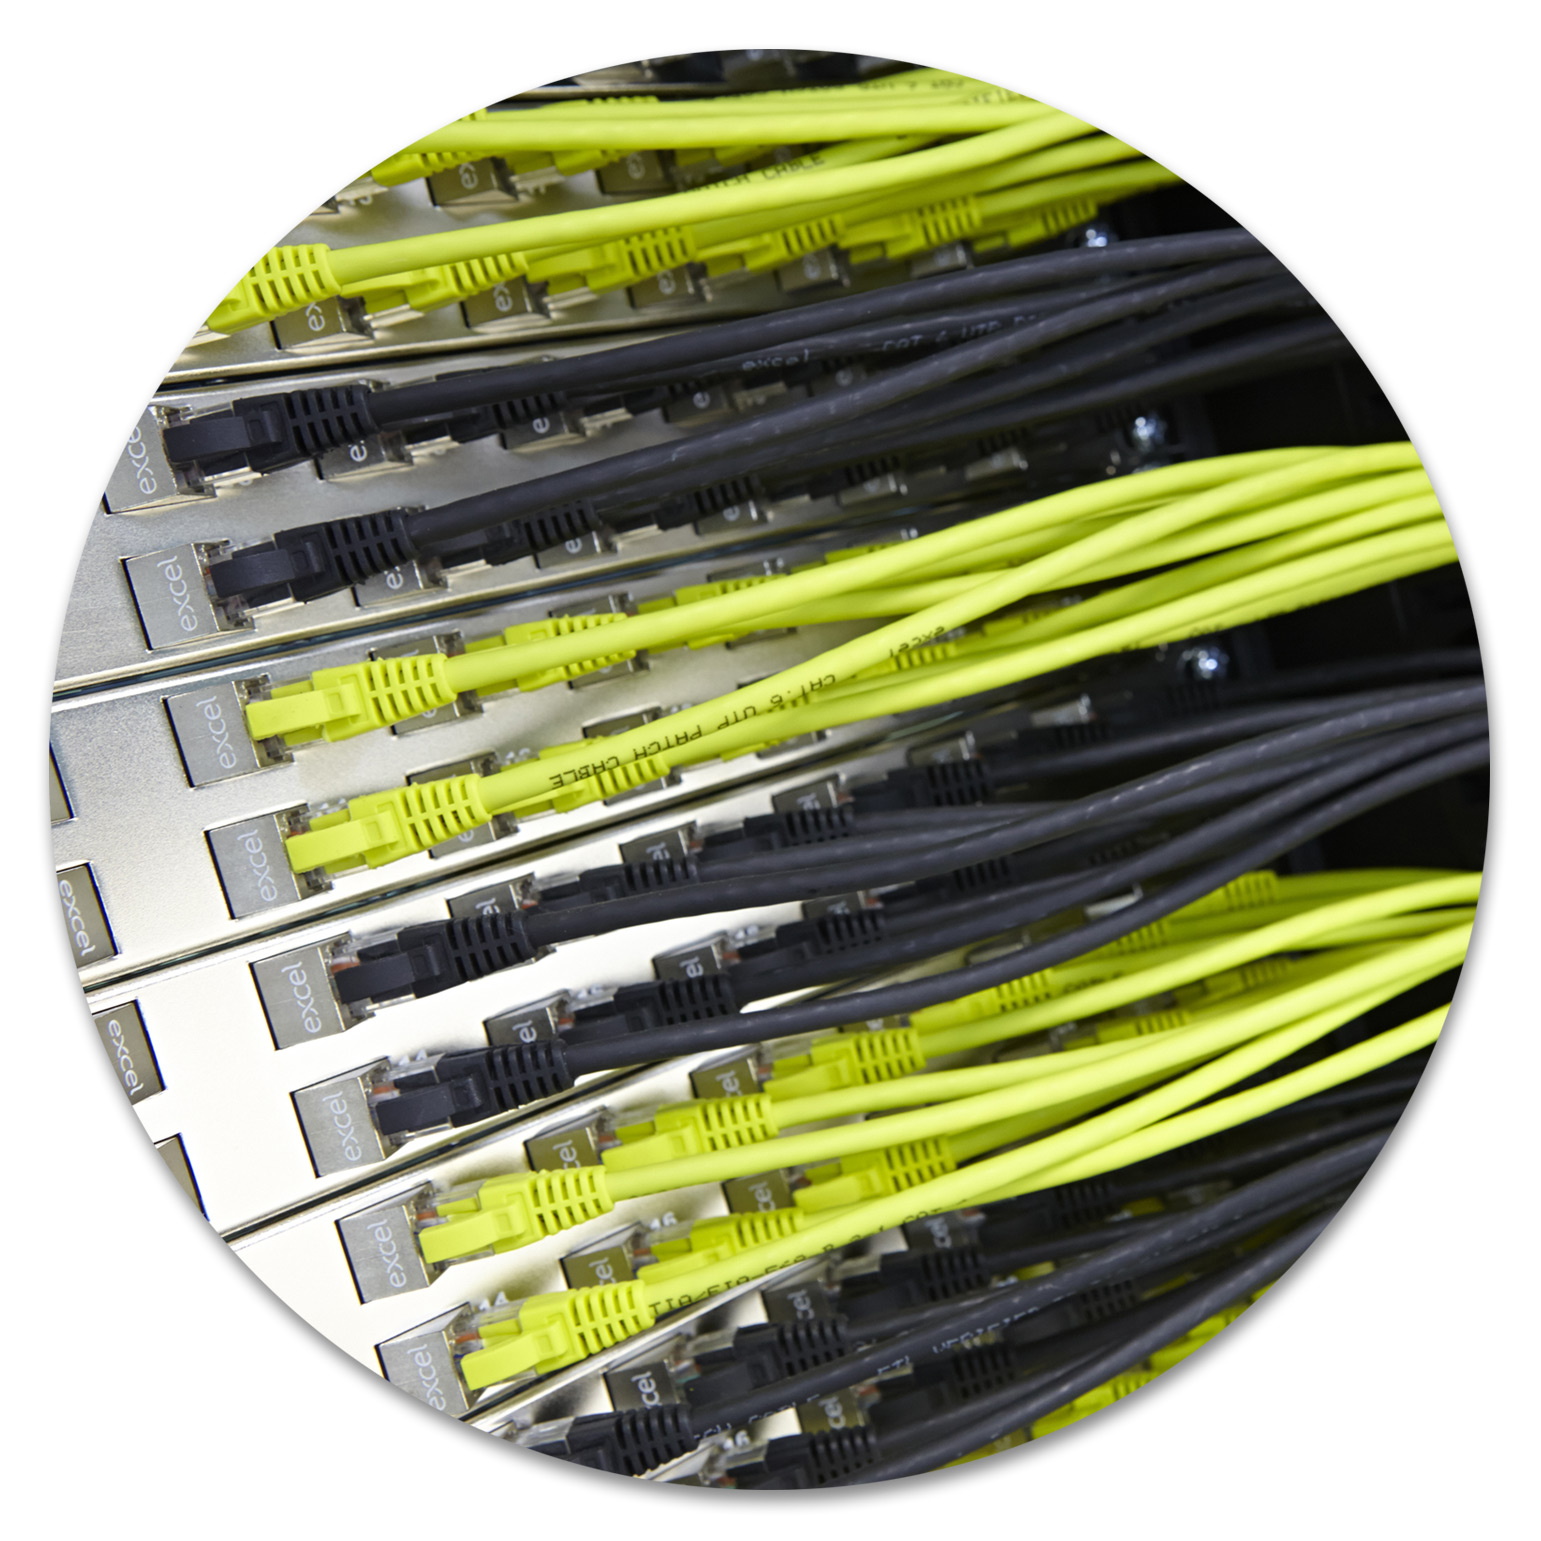 Green and Black Excel Patch Leads